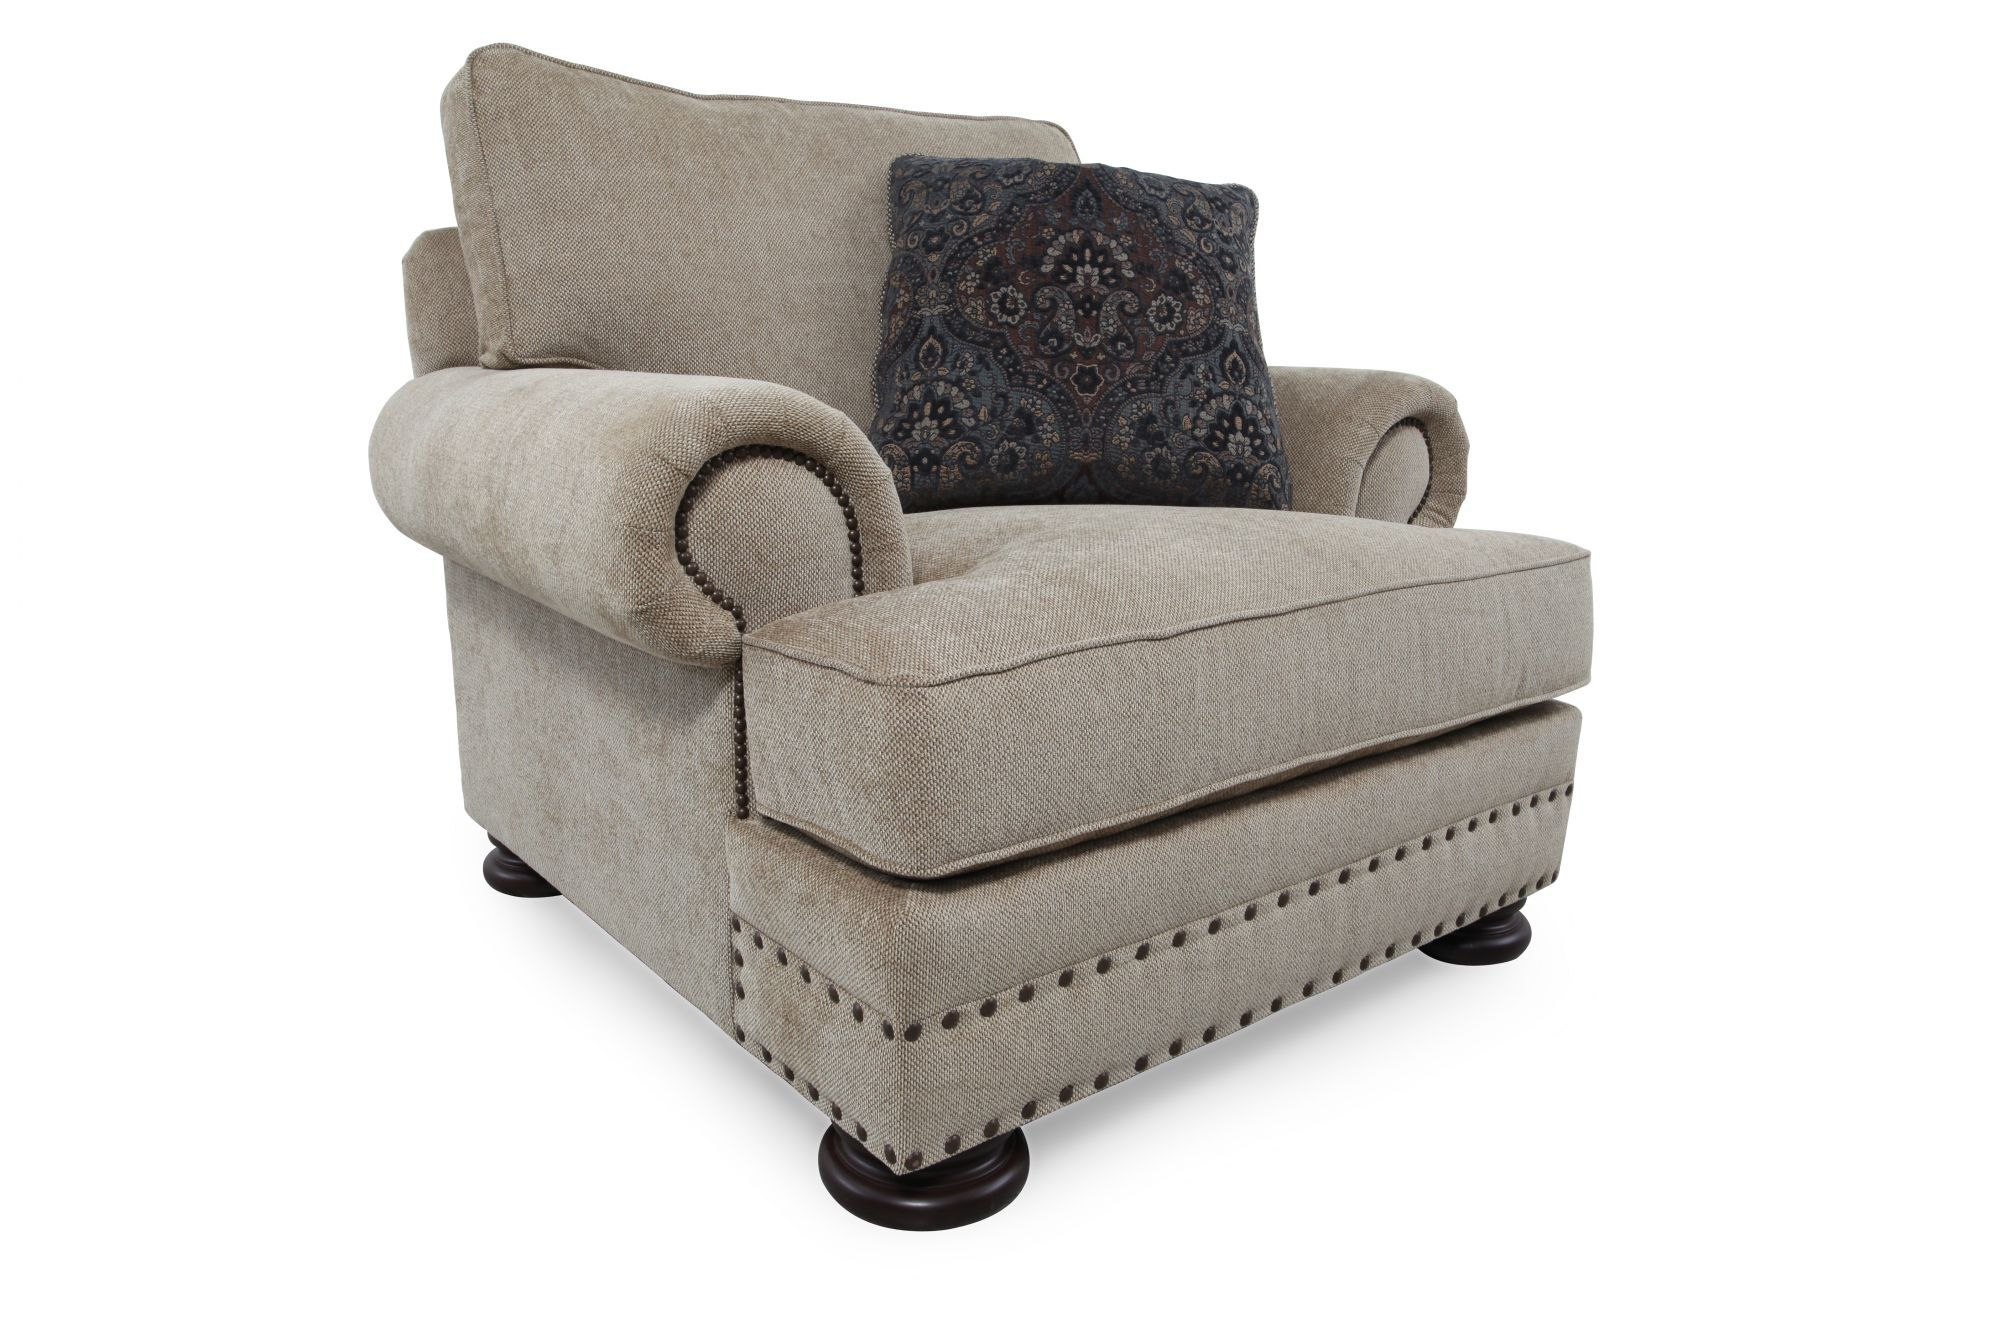 Bon Nailhead Accented European Classic Chair In Beige